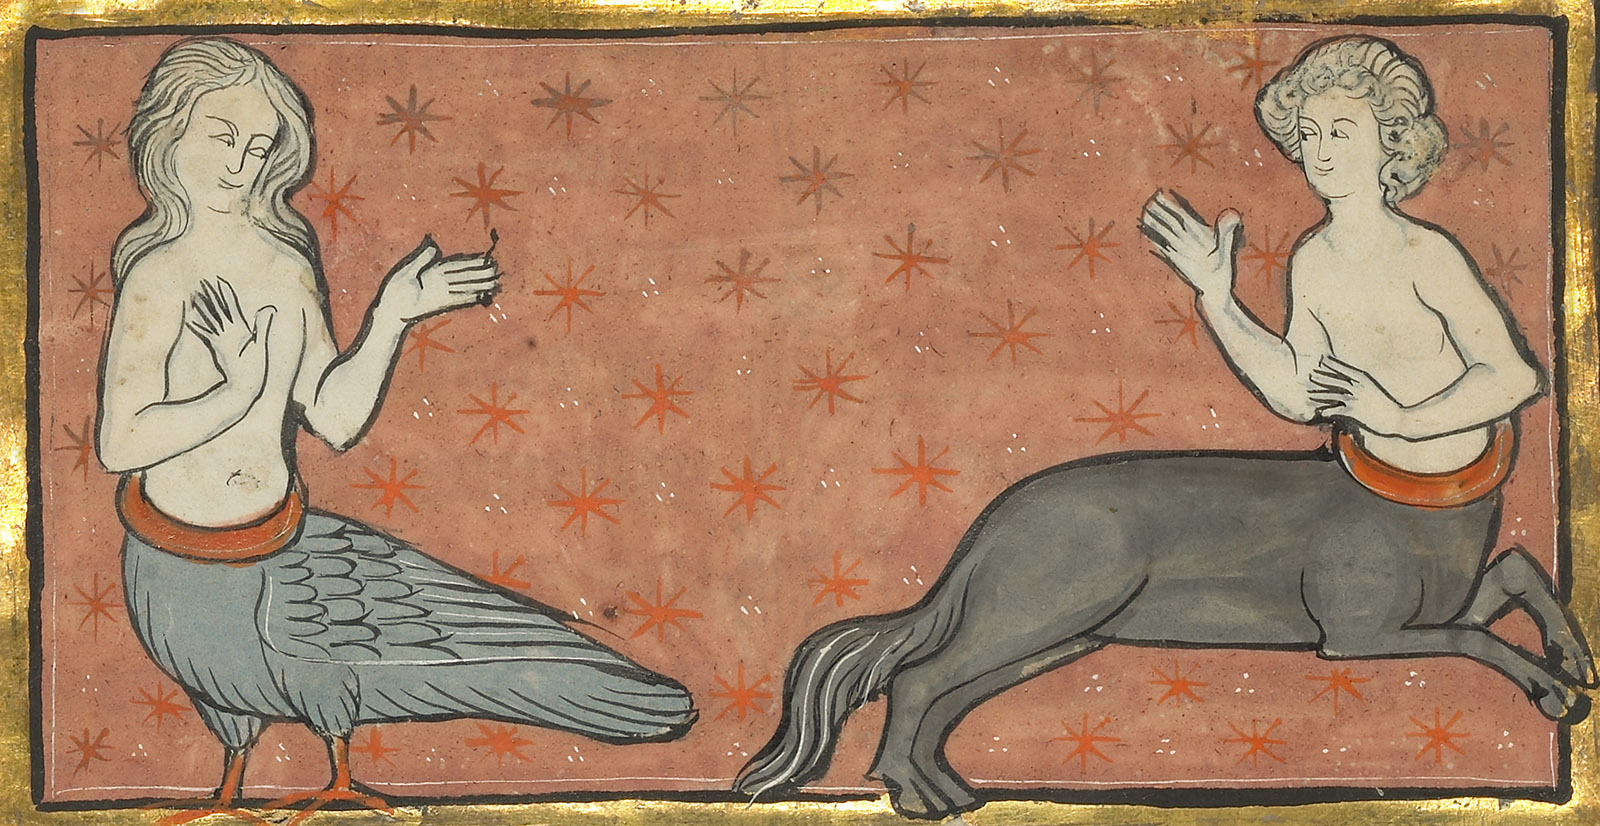 Against a coral background with orange stars, a siren with long pale hair, gray feathers, and orange legs gestures at a centaur with a gray body.